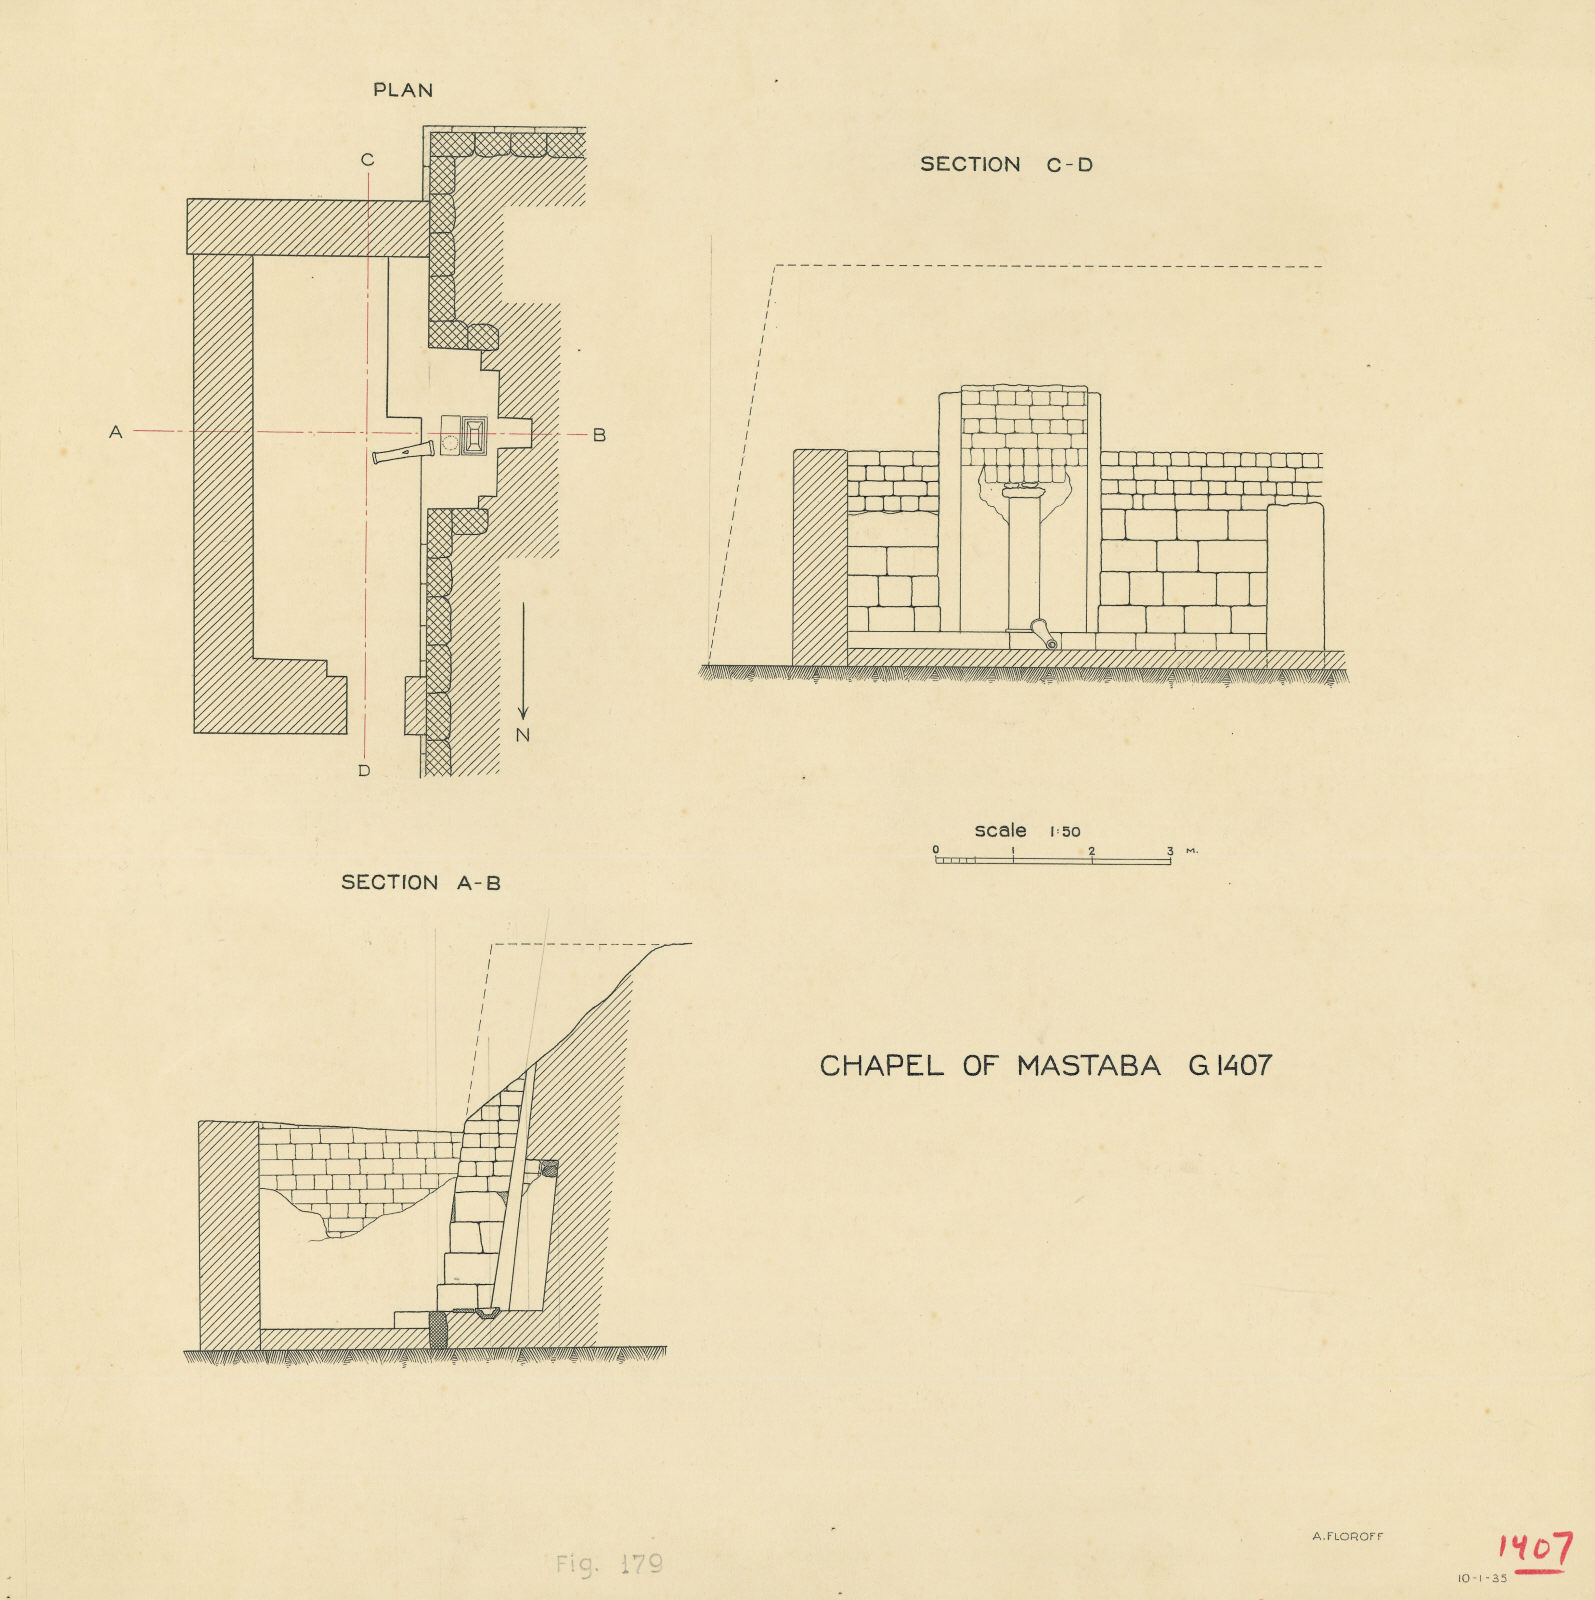 Maps and plans: G 1407, Plan and sections of chapel